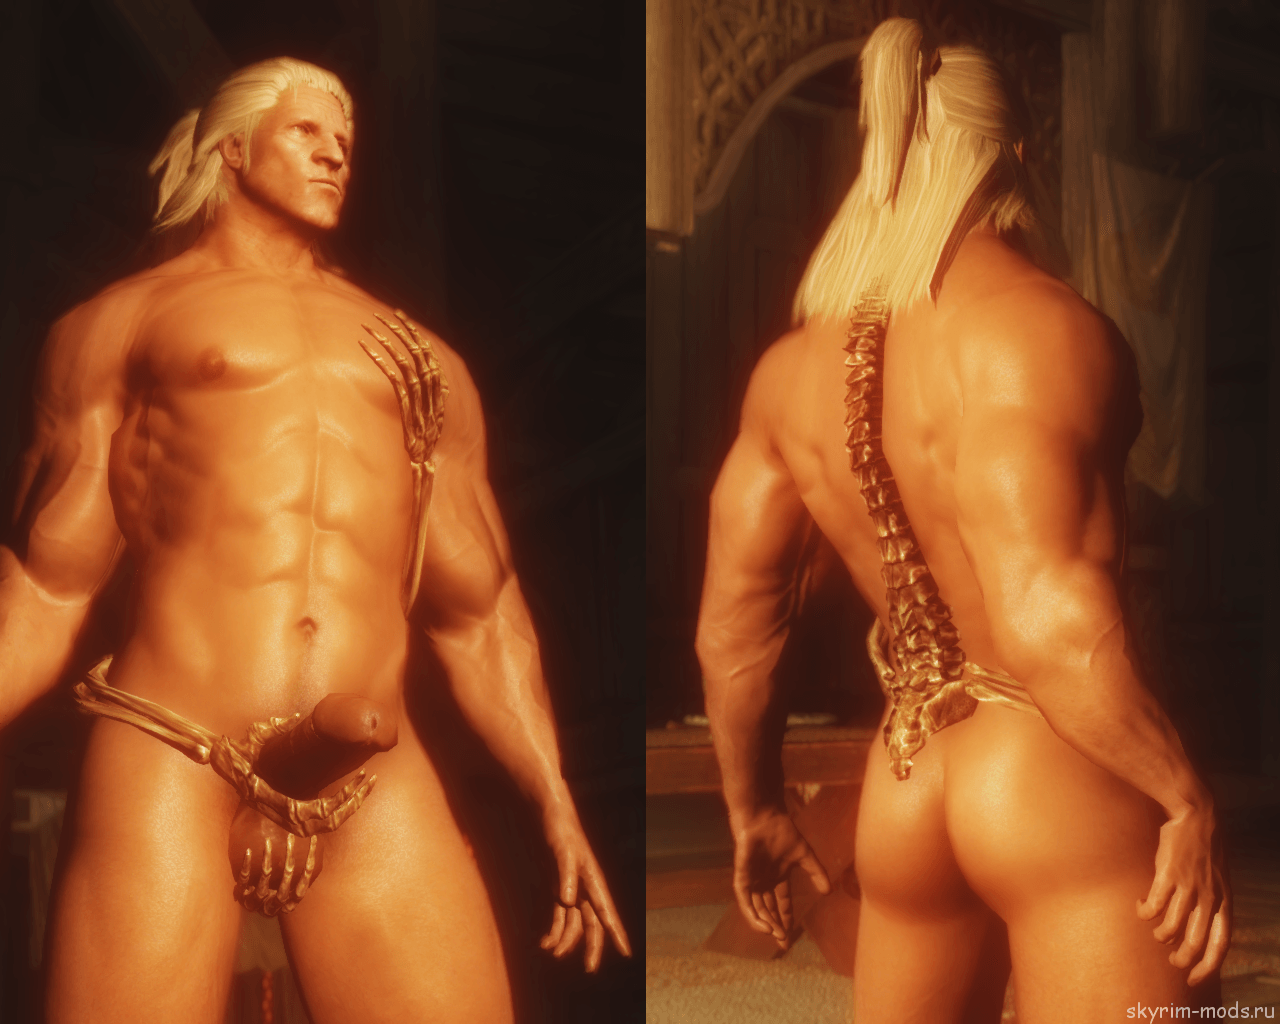 Skyrim nude femals porncraft videos